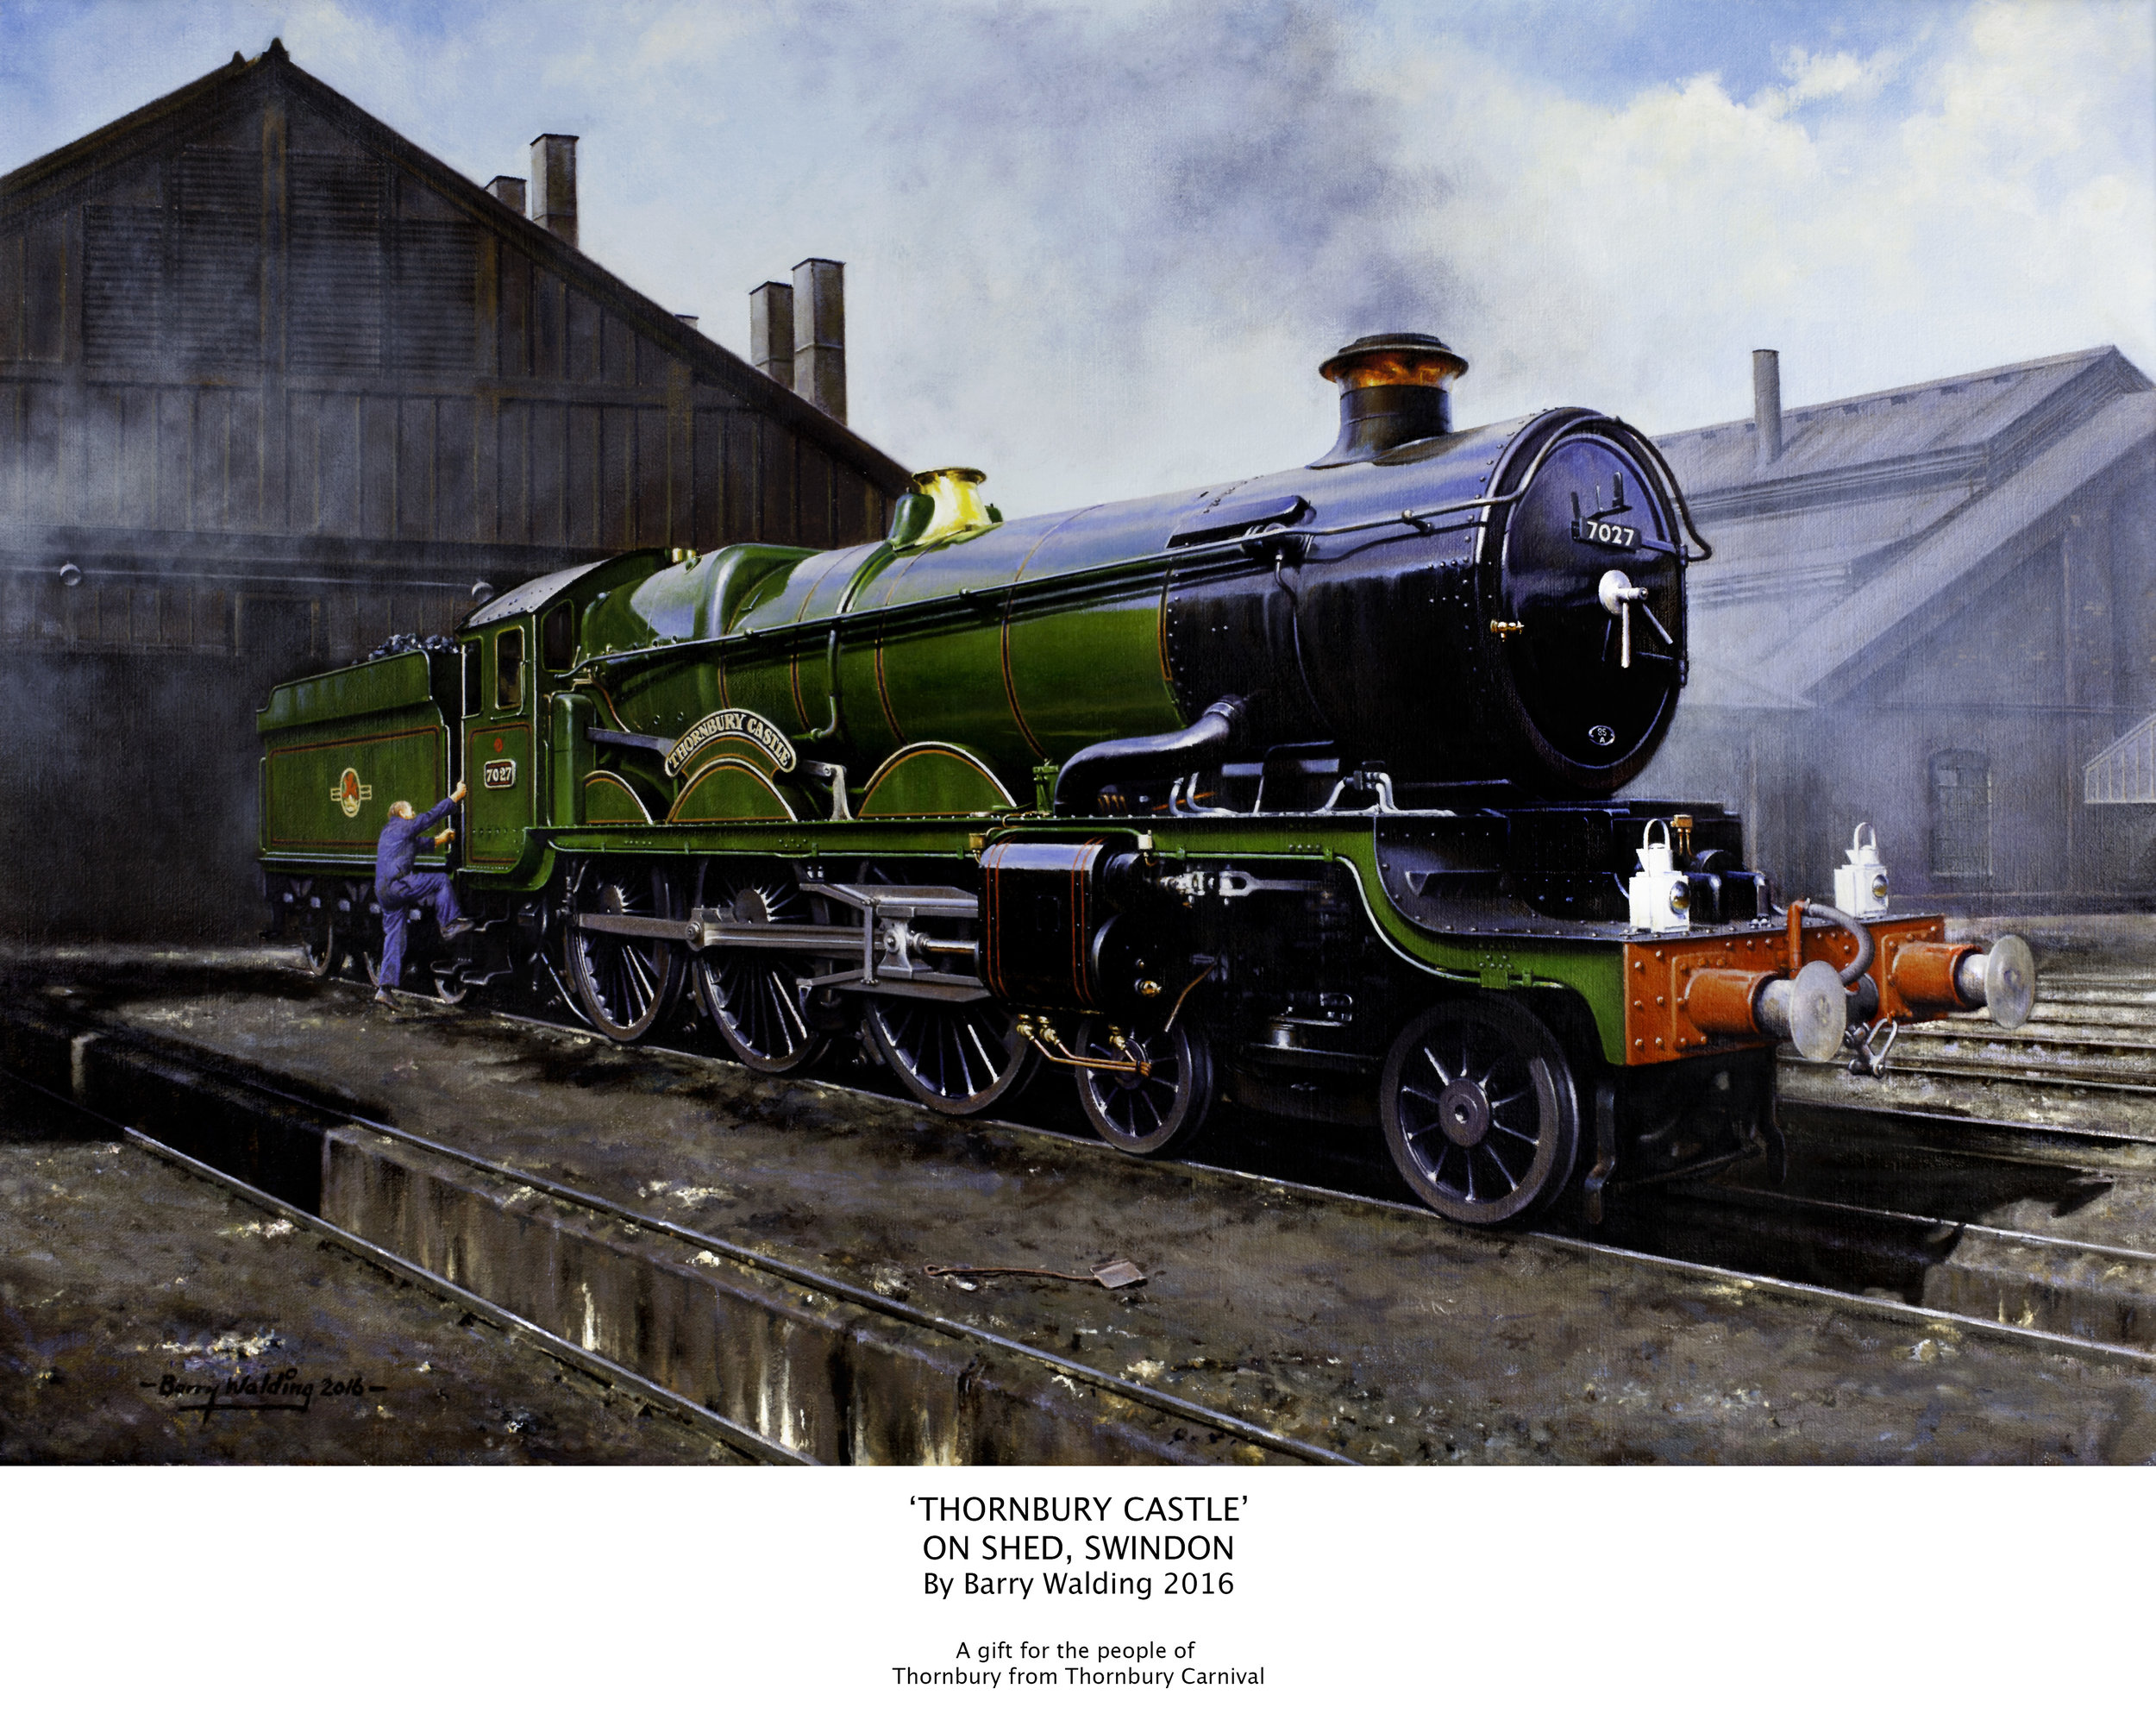 'Thornbury Castle on Shed, Swindon' by Barry Walding